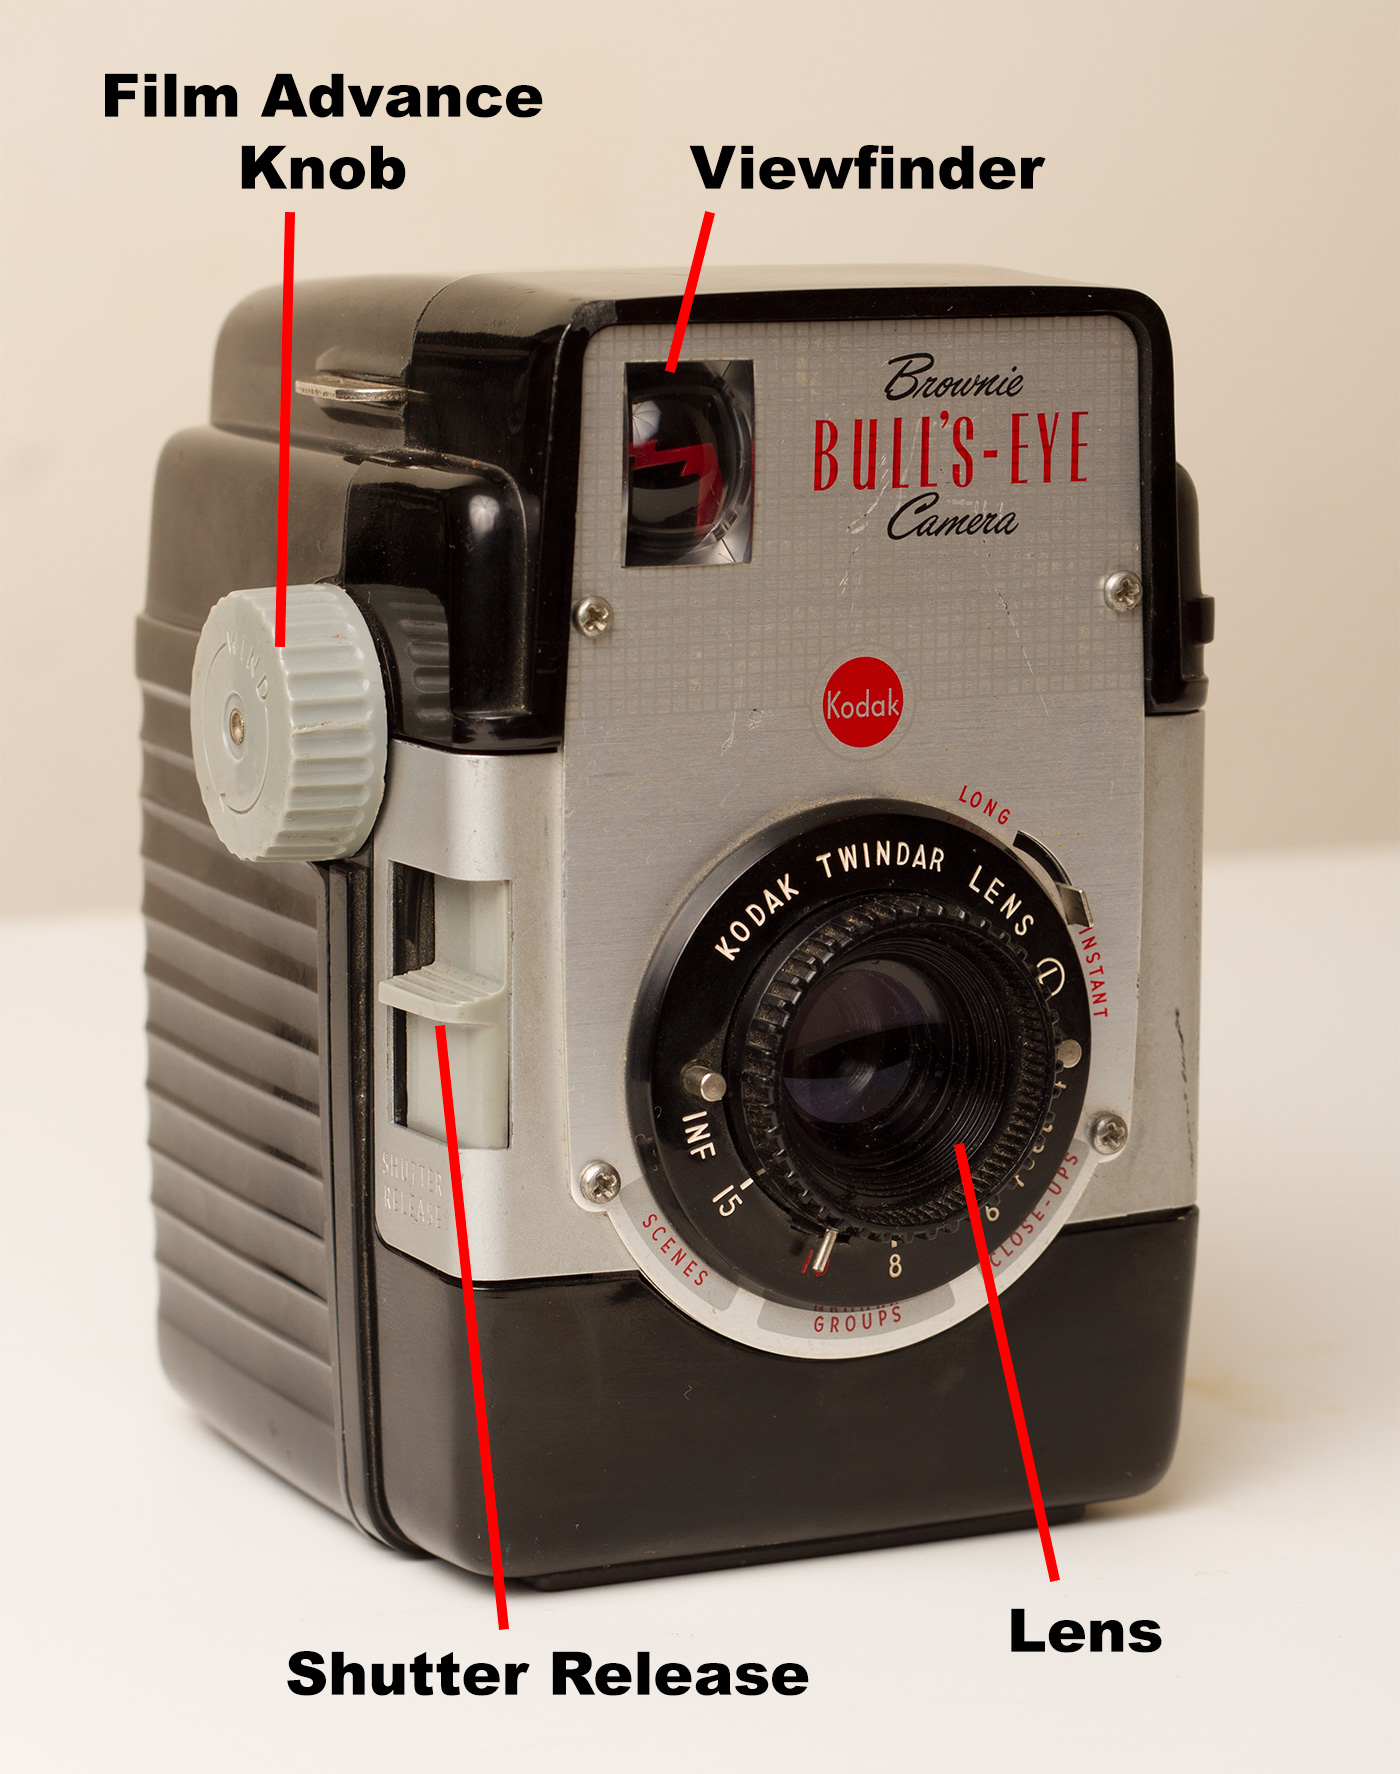 Figure 1. Brownie Bull's-Eye Camera, front and left side view.